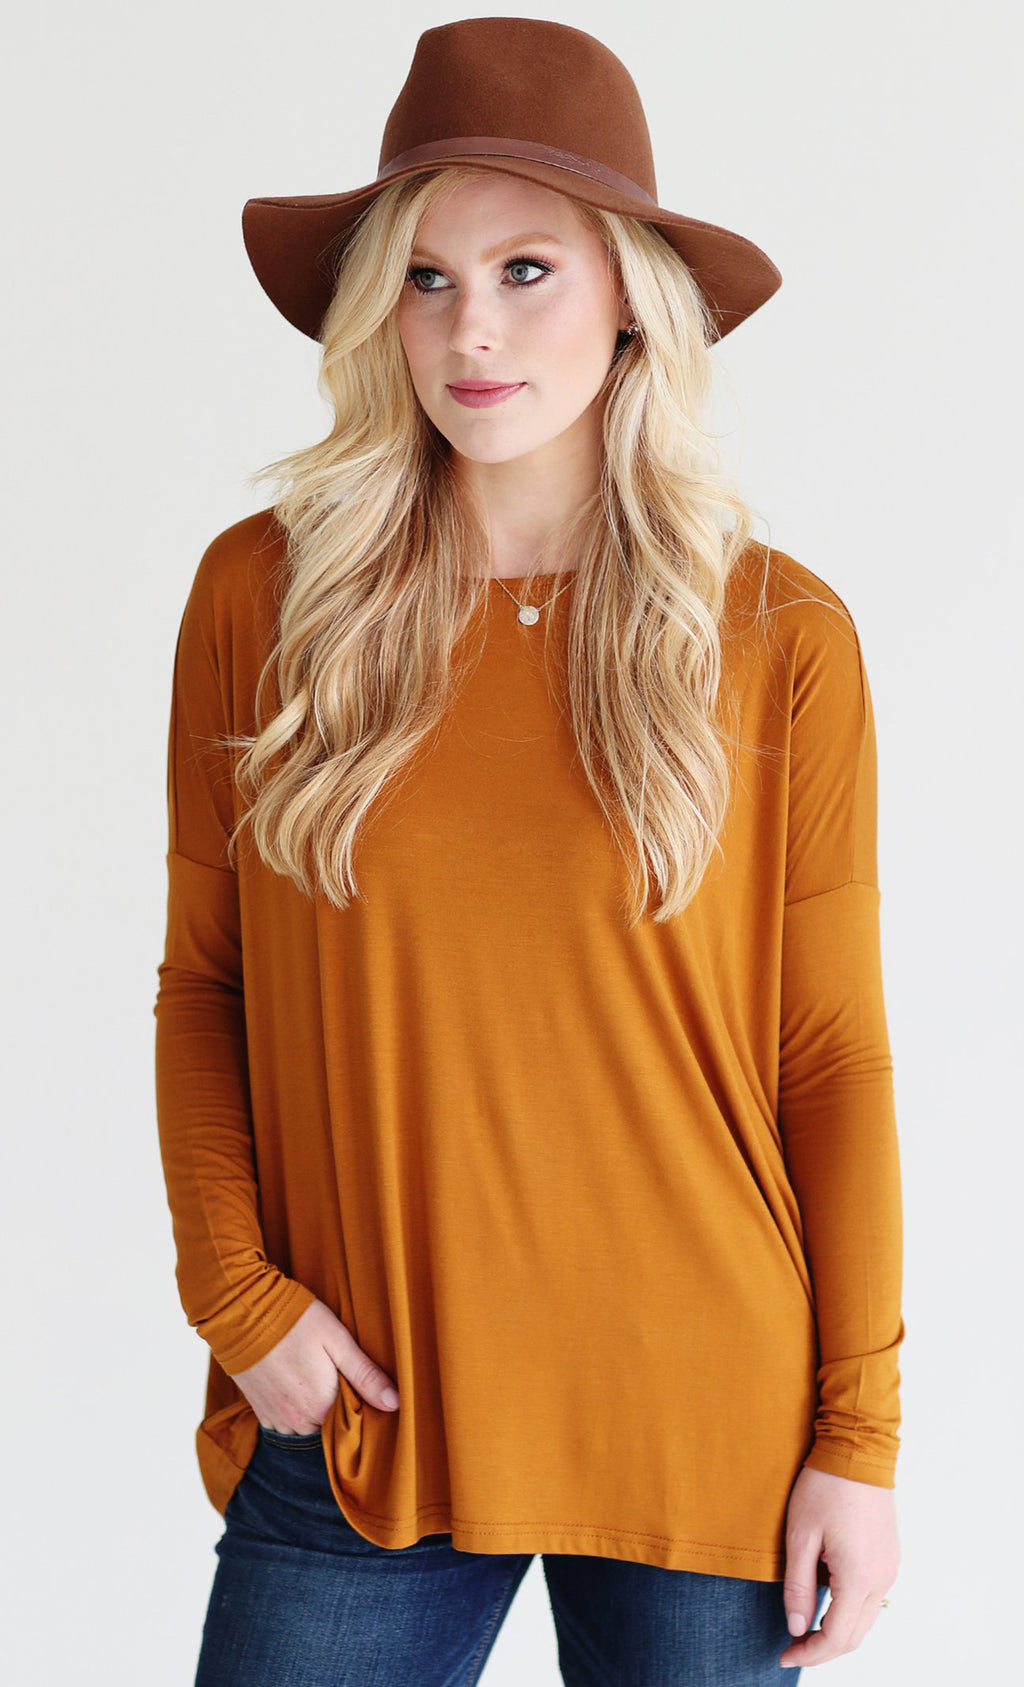 Basic Piko 1988 Dark Goldenrod Bamboo Piko Comfy Boat Neck Long Sleeve Slouchy Knit Tee Shirt Top